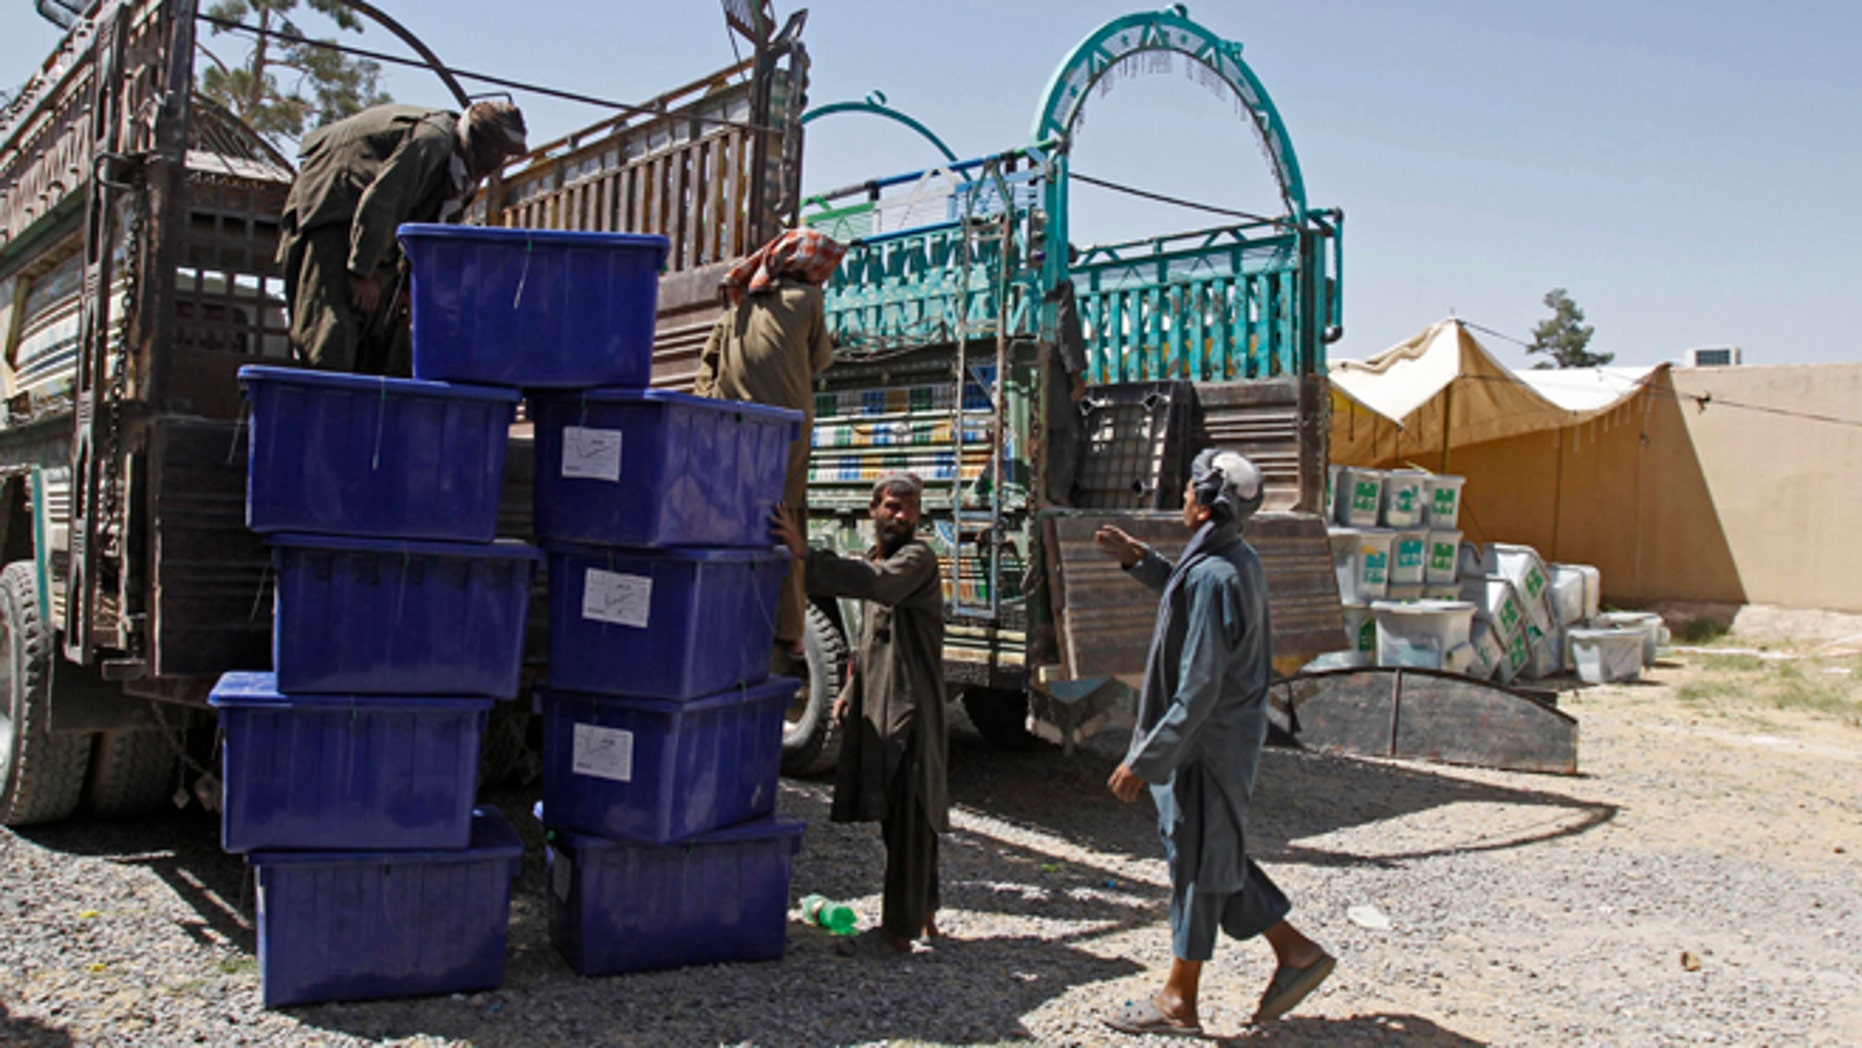 June 12, 2014: Afghan election workers load ballot boxes and election materials into trucks to deliver to polling stations, at a warehouse in Kandahar, Afghanistan. (AP)